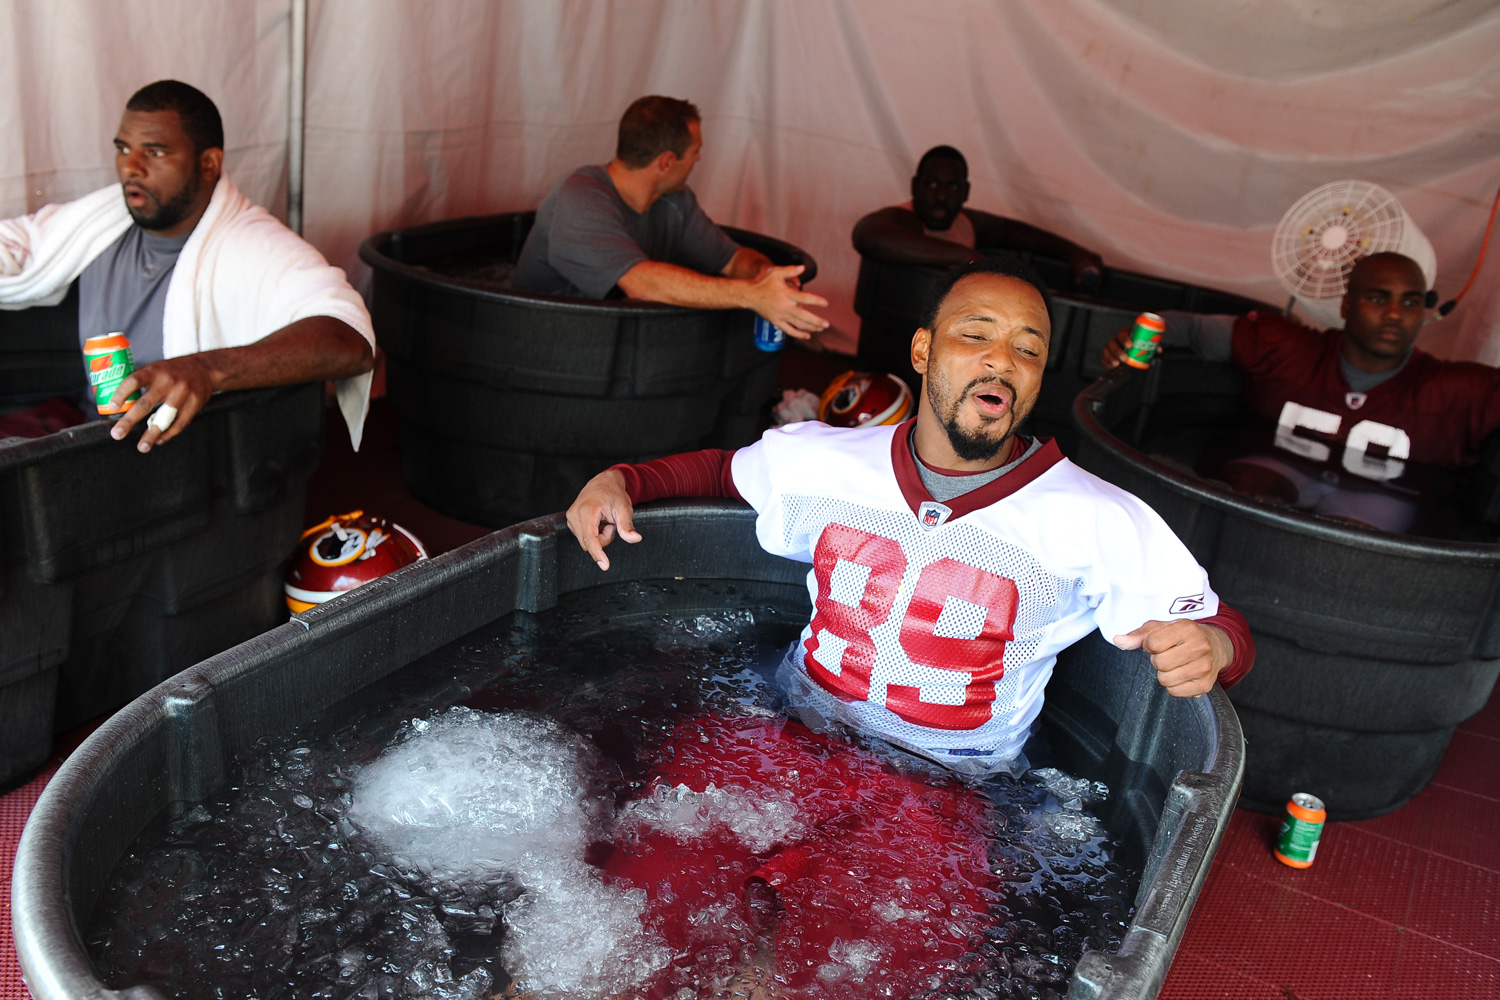 Former Redskins wide receiver Santana Moss lets out a sigh as he dips in the freezing ice bath following their first workout of training camp in July 2010.